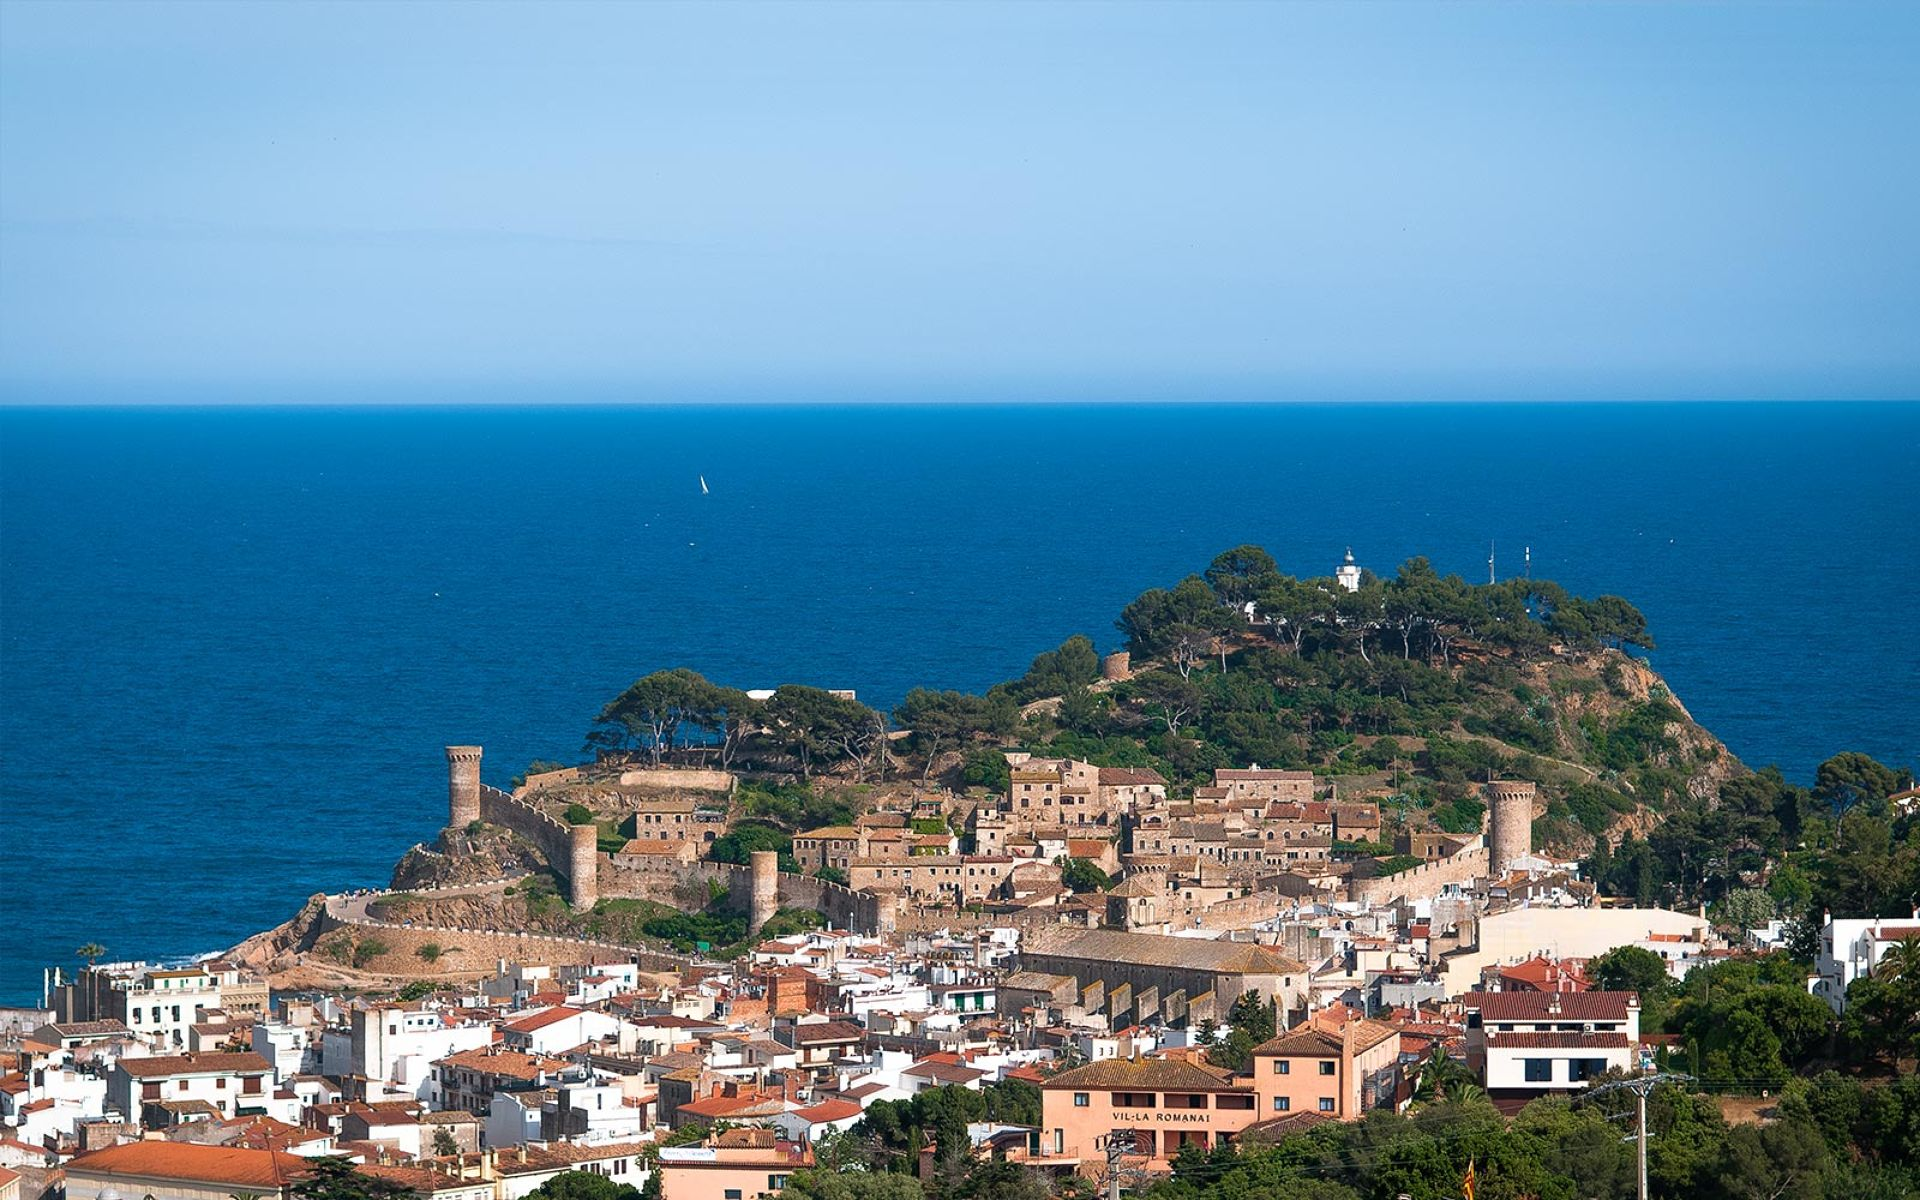 In a magical setting, in the heart of the Costa Brava